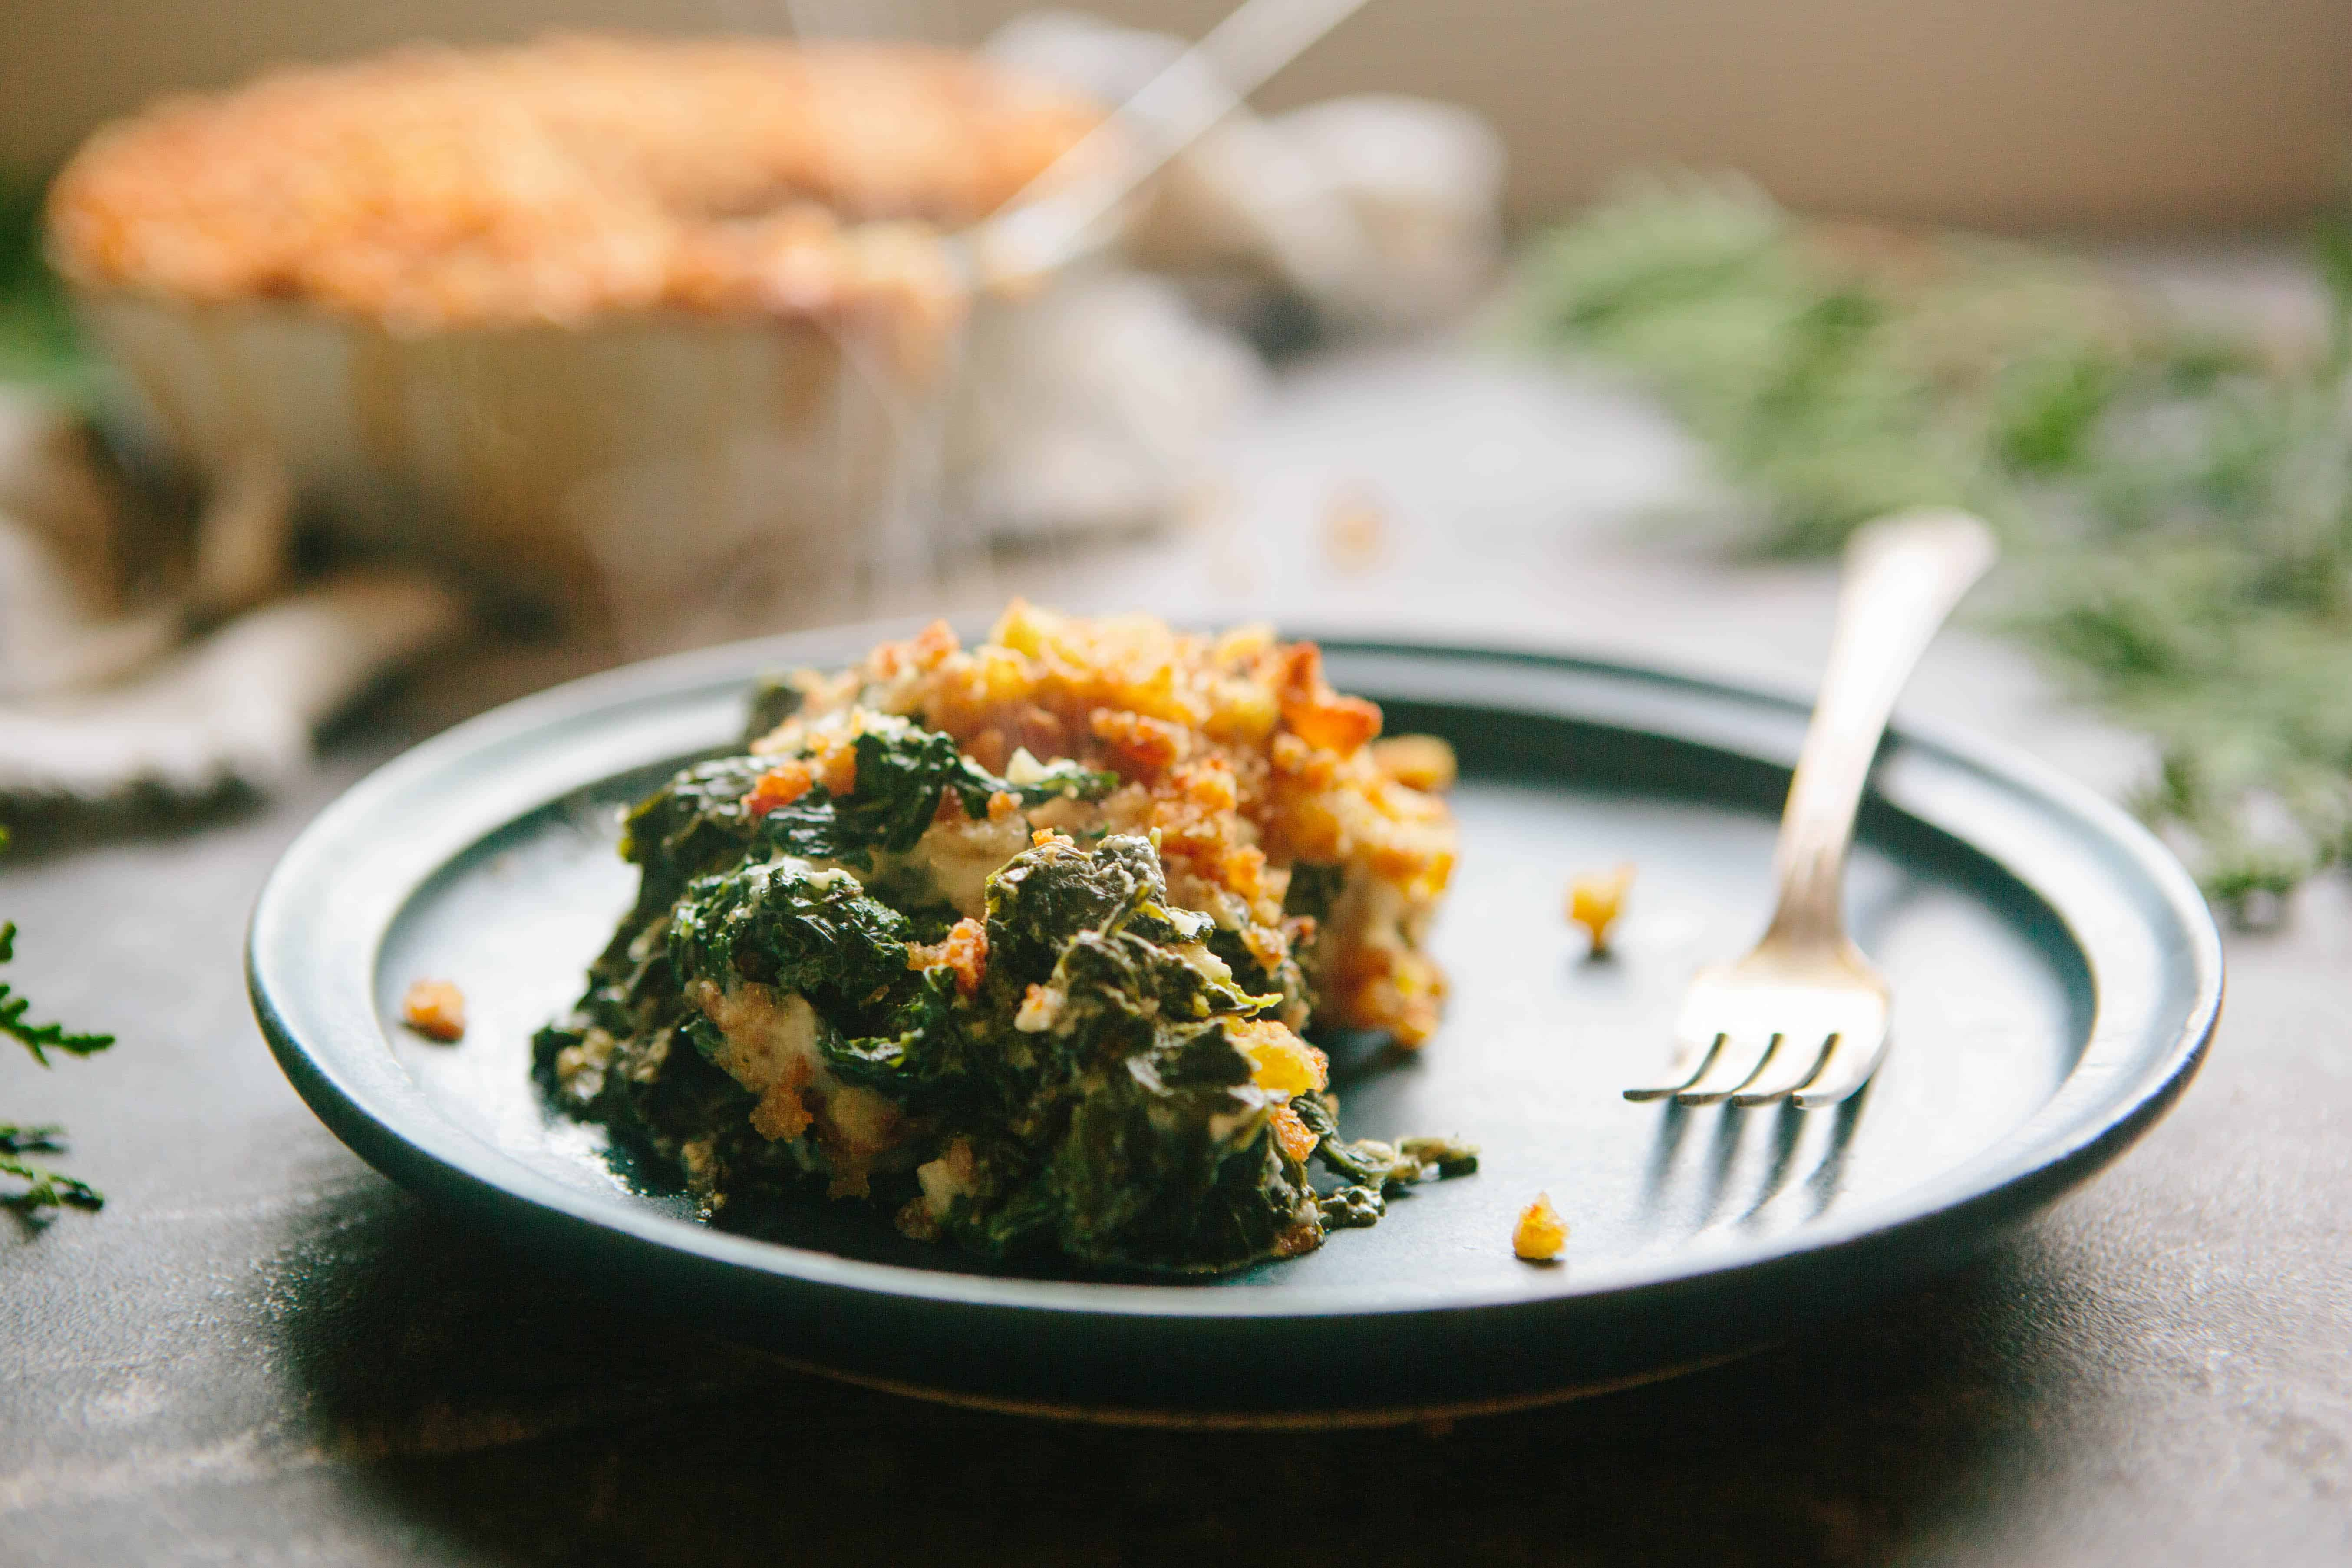 Steaming creamy kale gratin on a small plate with a fork.